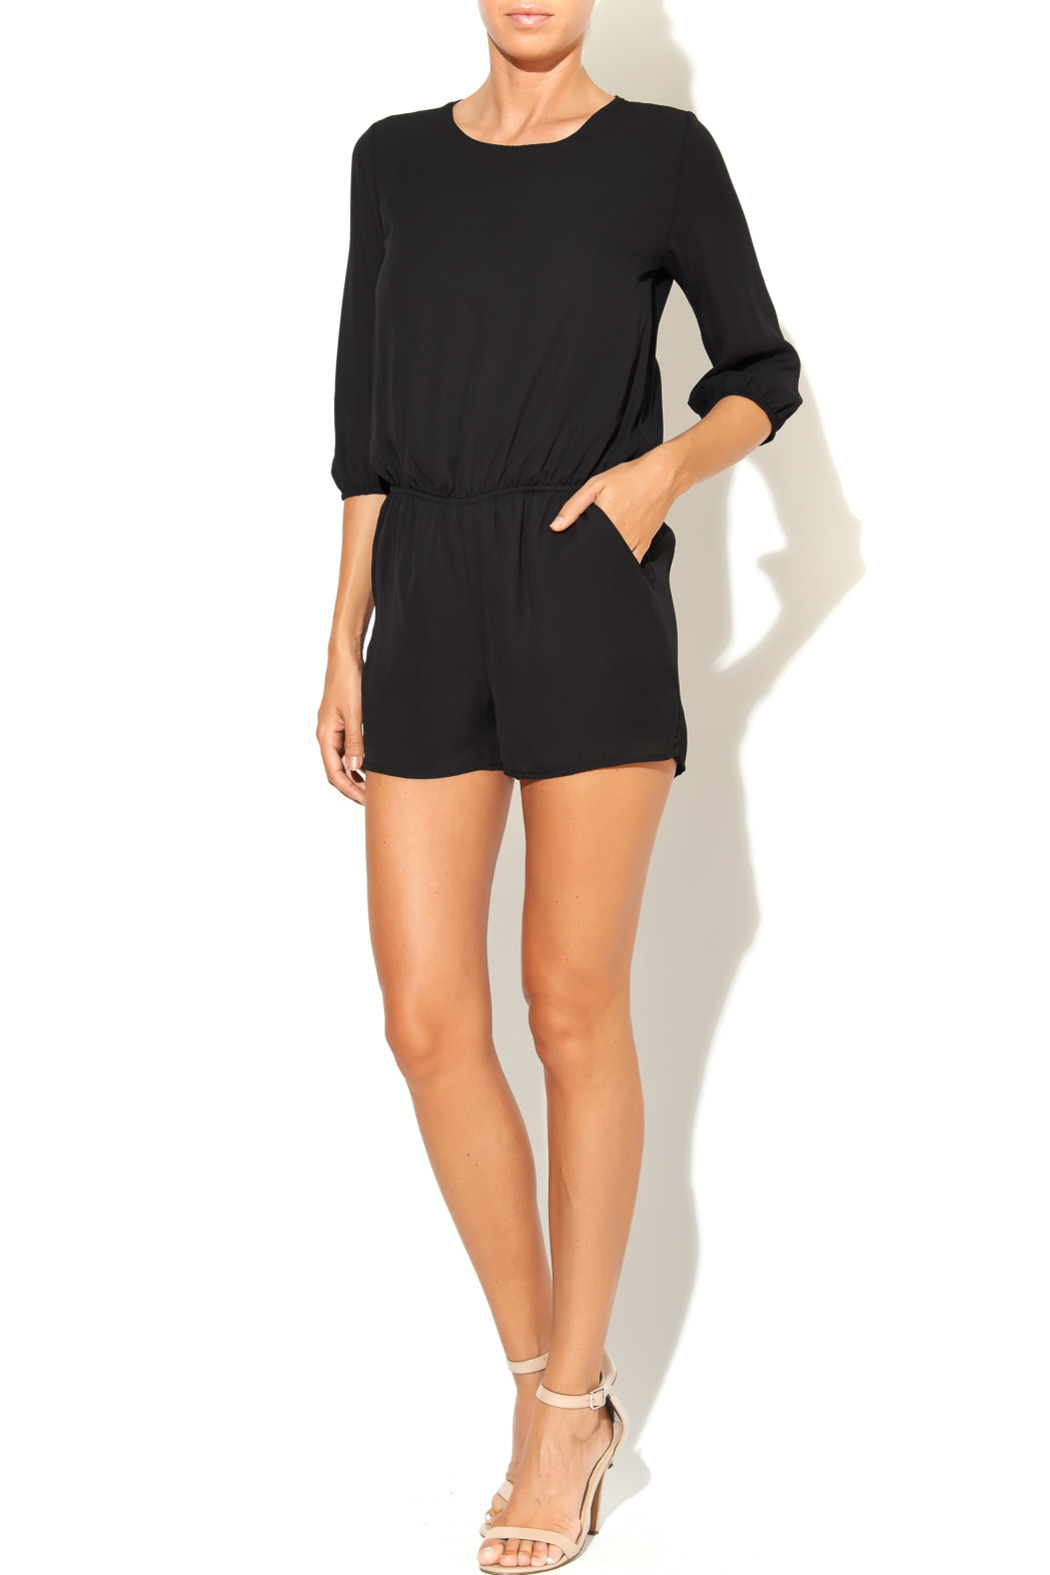 6b8ffdddbe2 Final Touch Black Open Back Romper from Florida by Stalhi Boutique ...